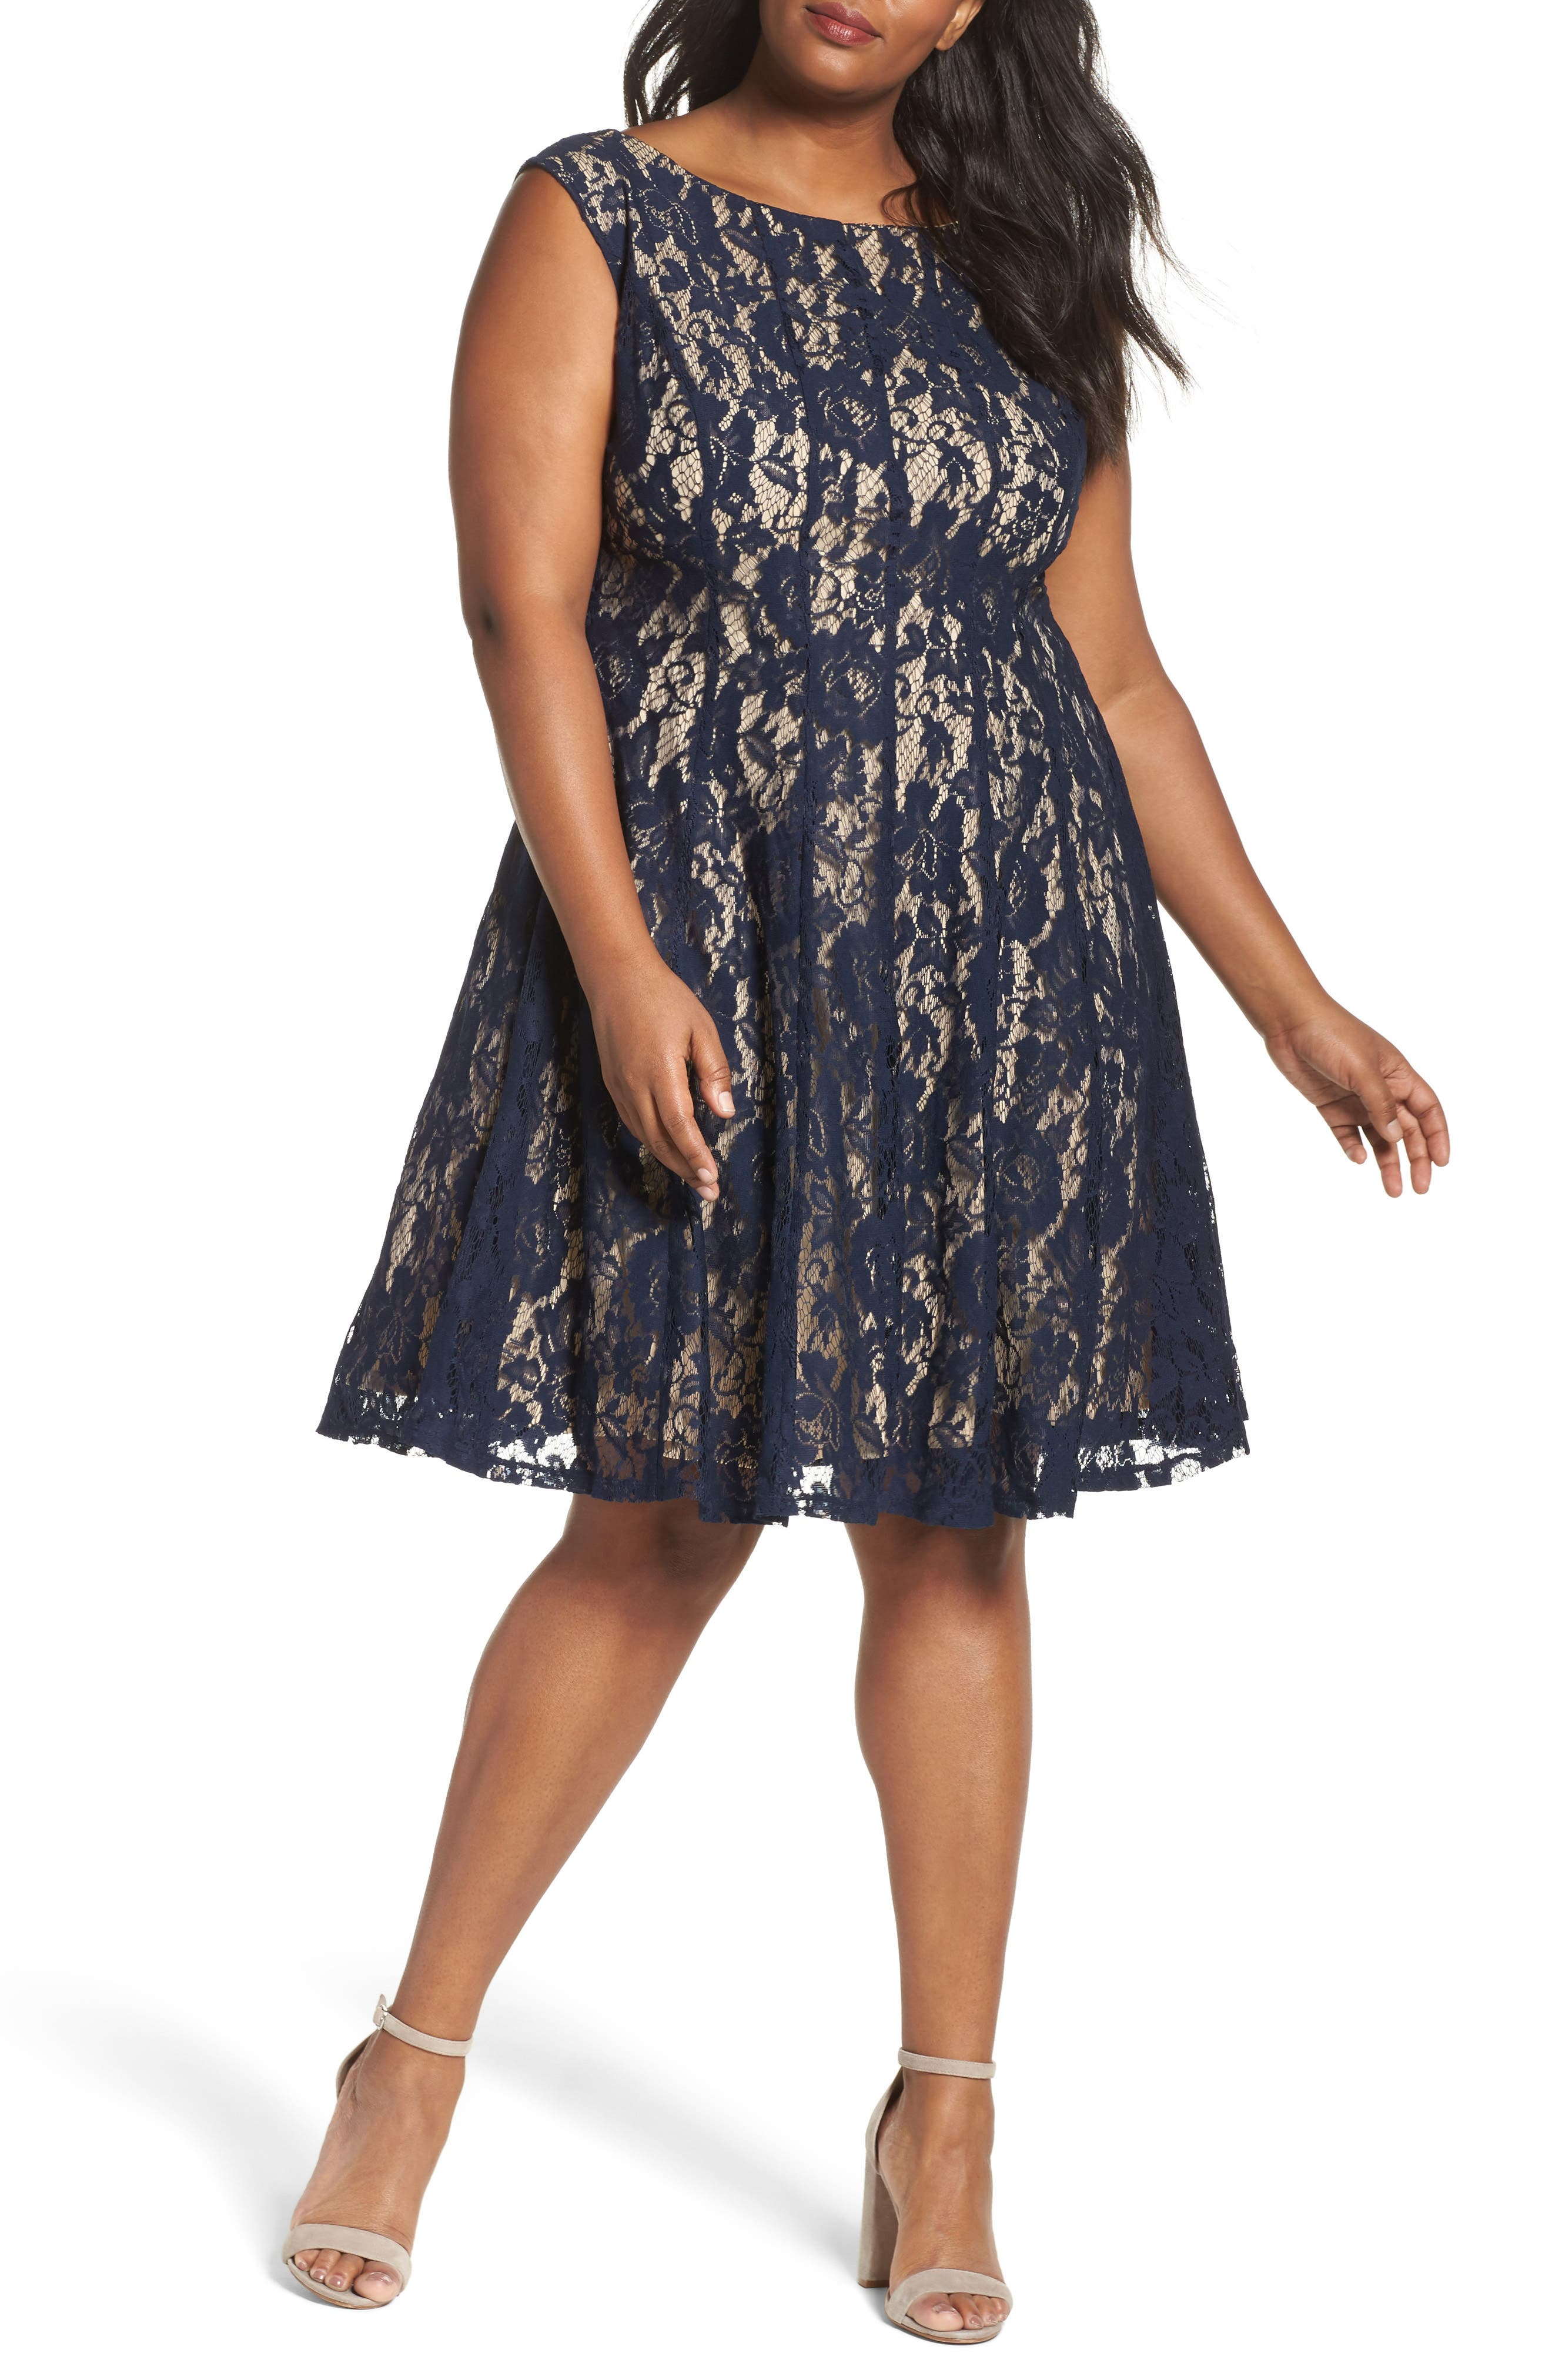 Alternate Image 1 Selected - Gabby Skye Lace Fit & Flare Dress (Plus Size)